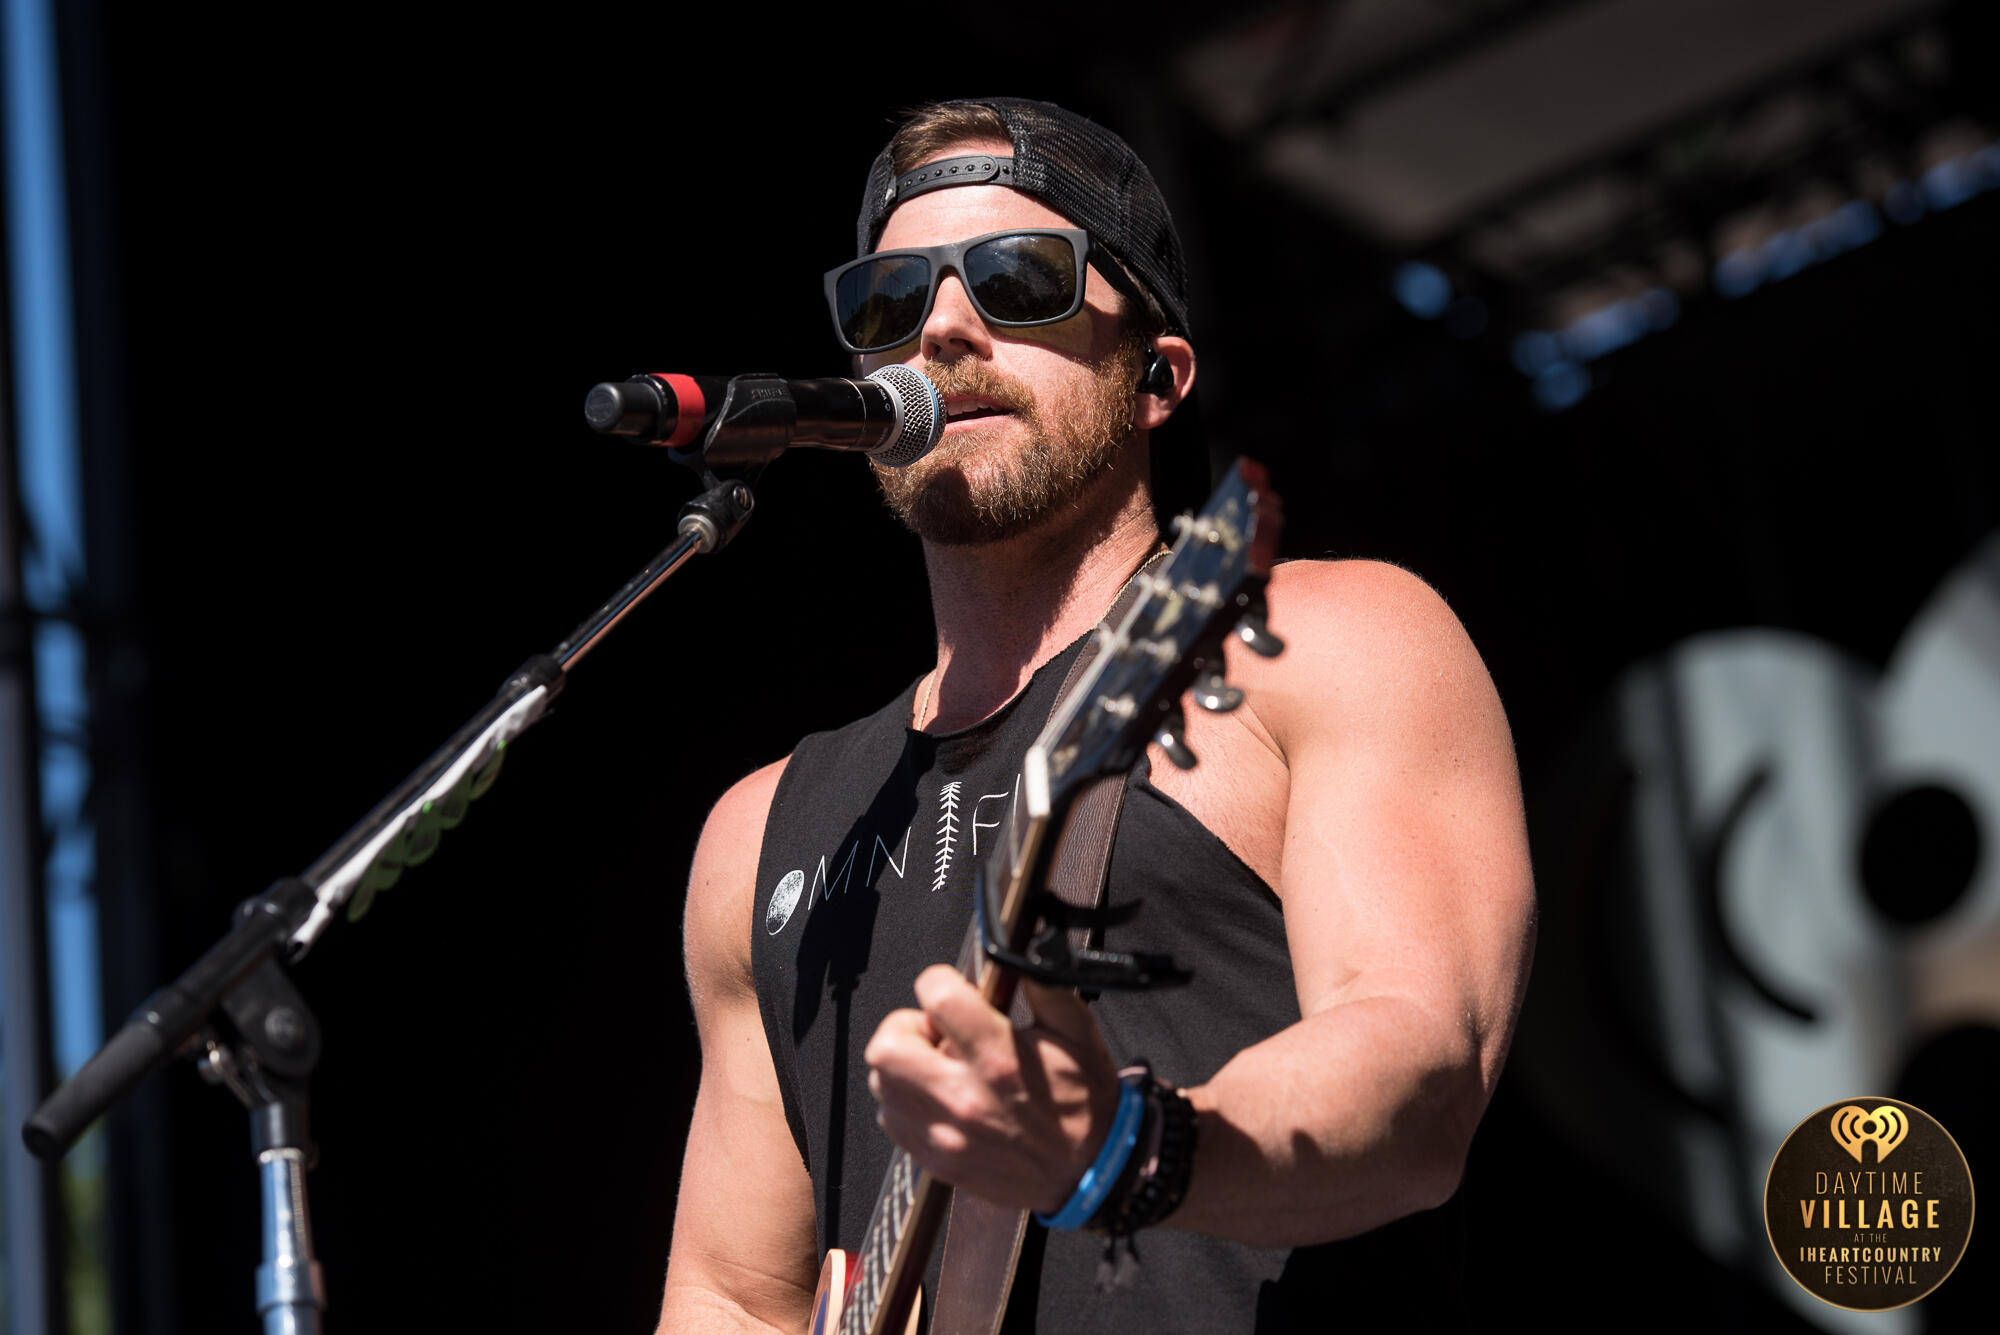 Kip Moore performs live during the 2017 Daytime Village at the iHeartCountry Festival, A Music Experience by AT&amp;T at the Frank Erwin Center on May 6, 2017 in Austin, Texas.    <p><strong><a href=